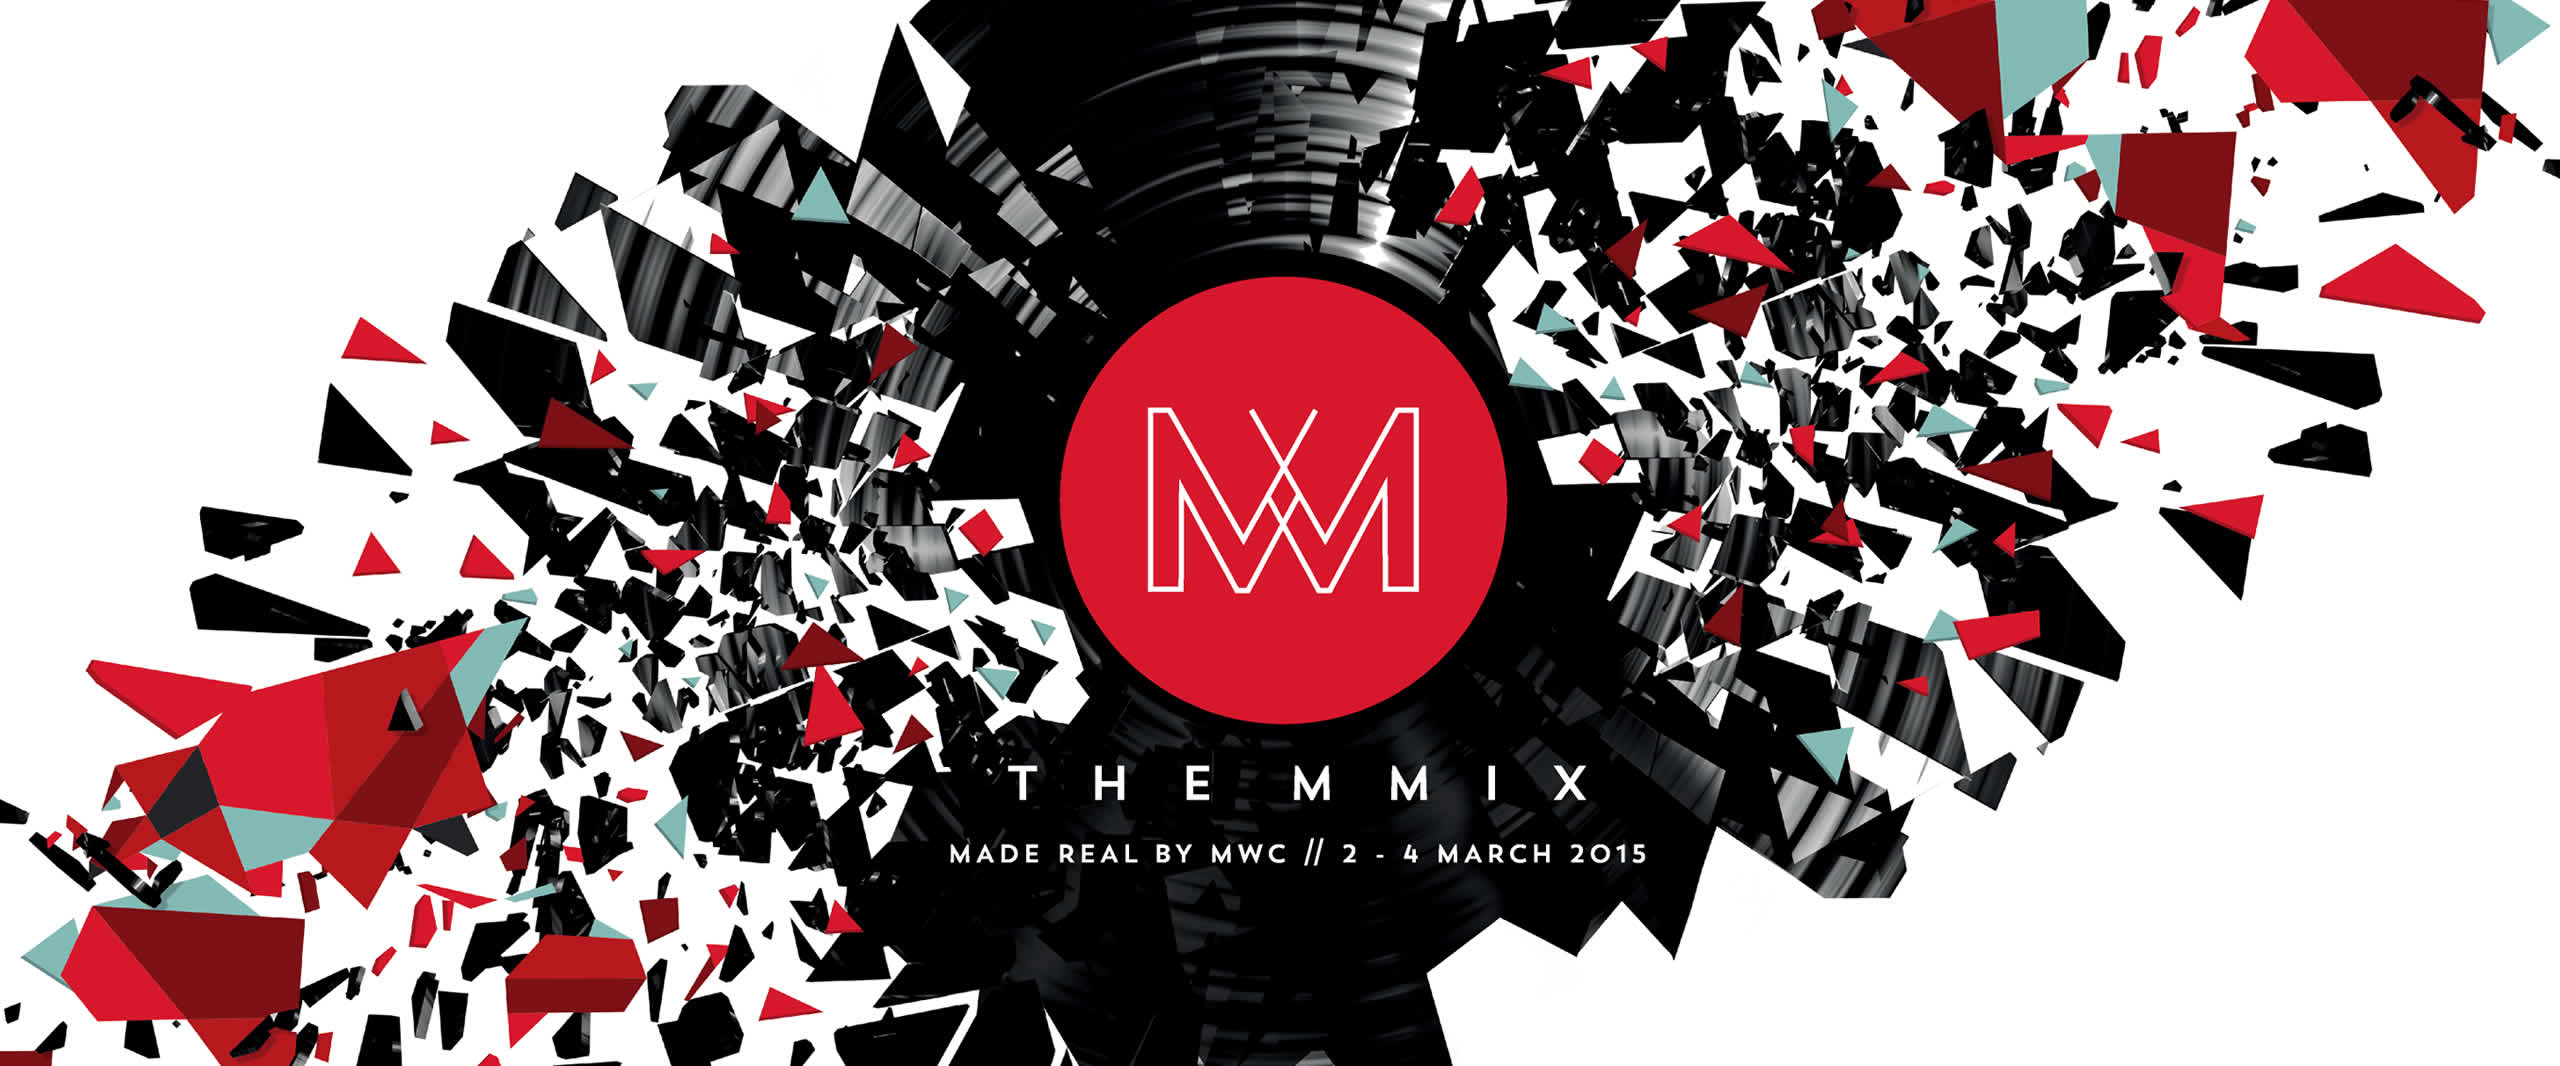 mmix mobile world congress 2015